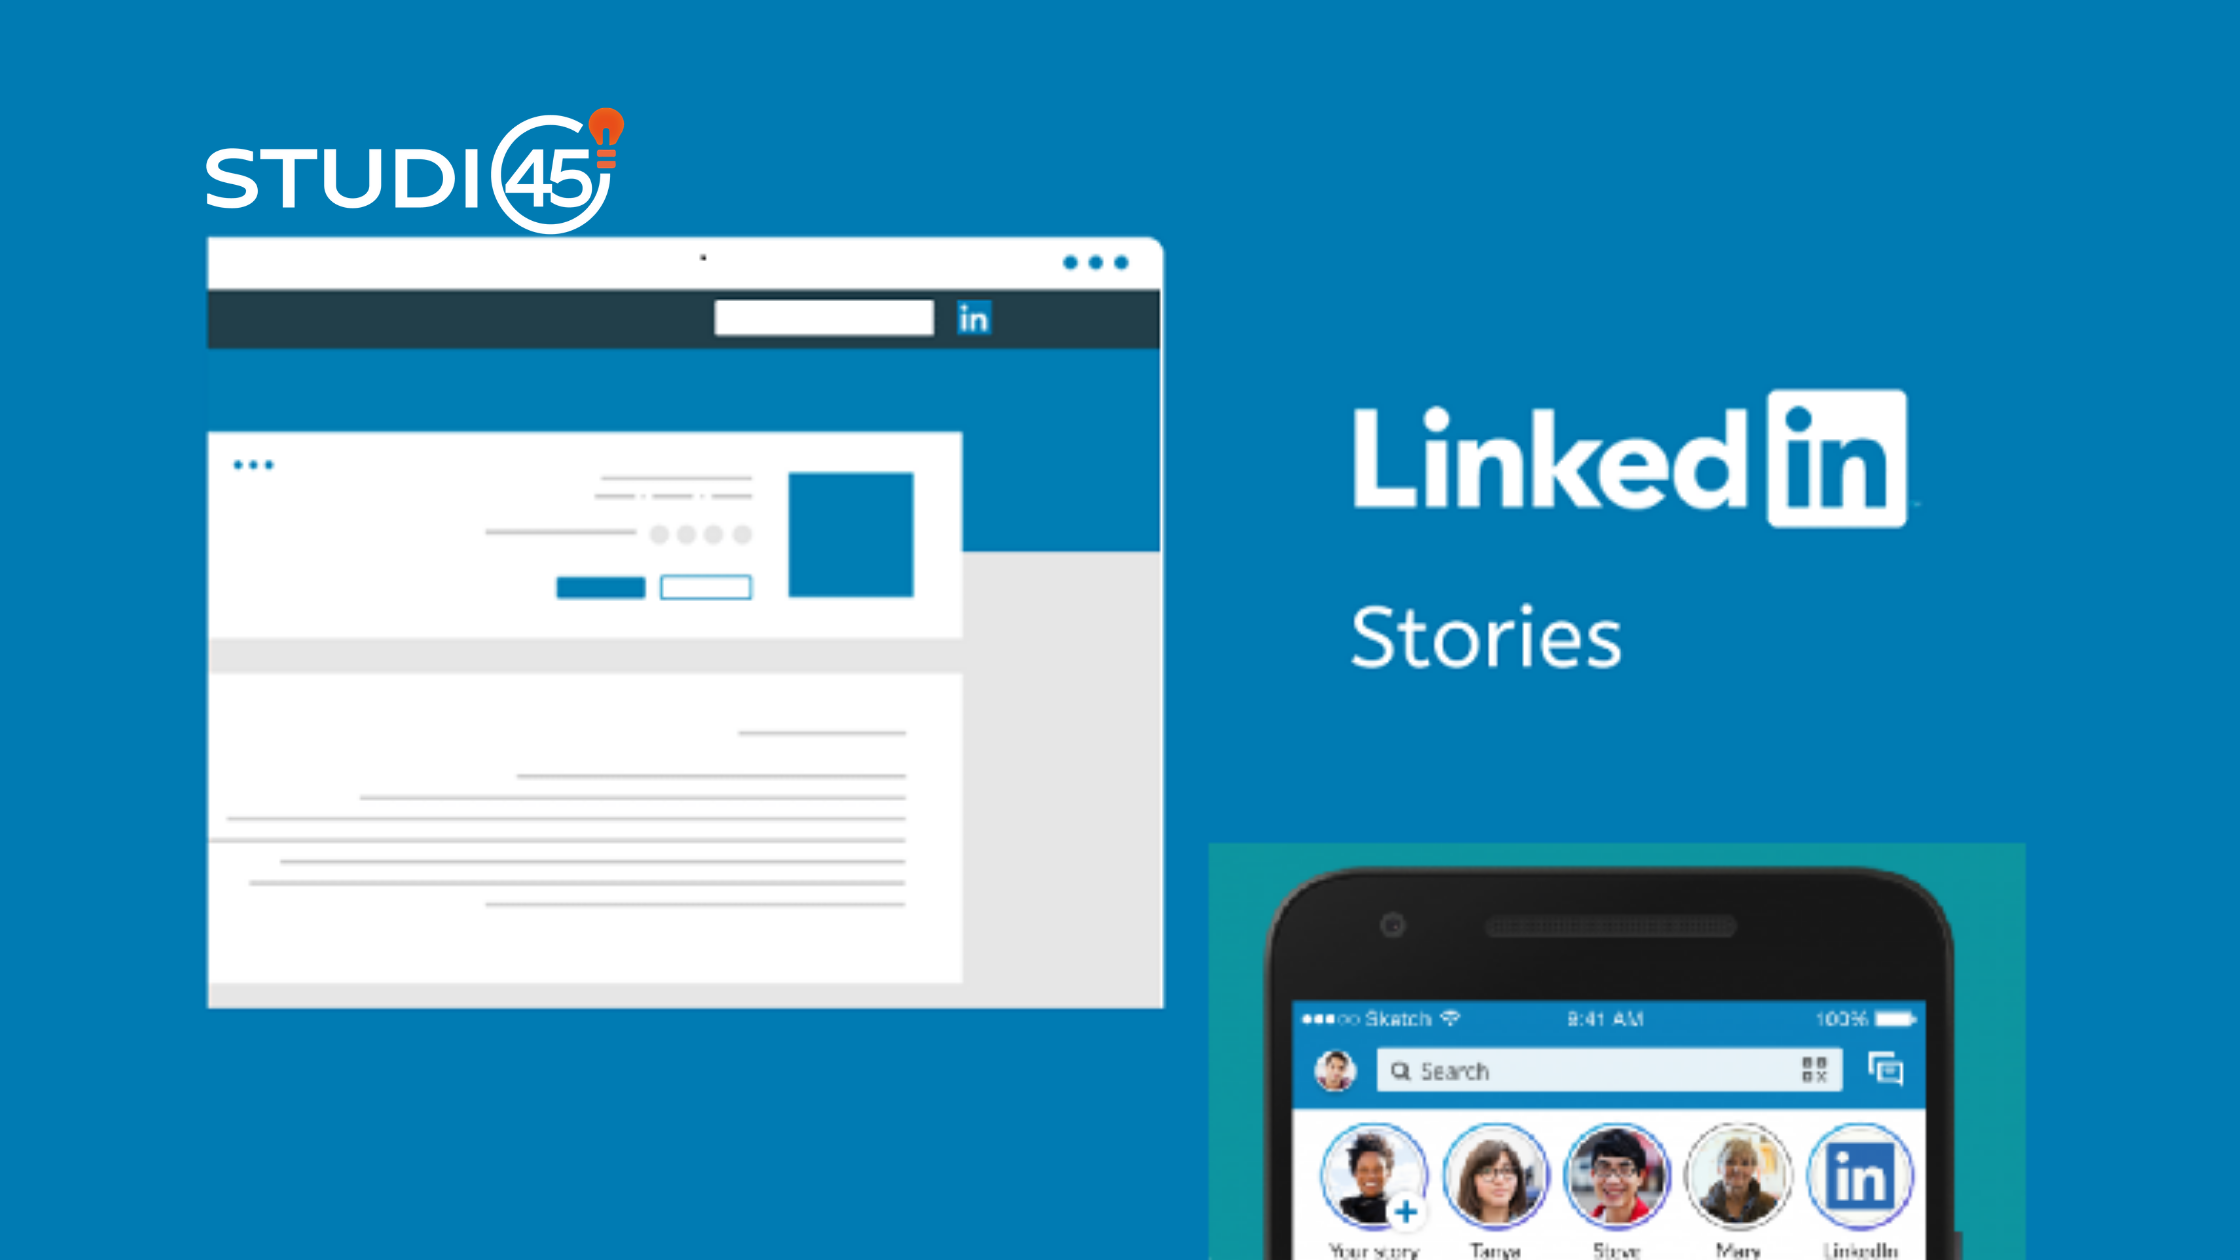 LinkedIn Stories: How to Use them for Your Brand?